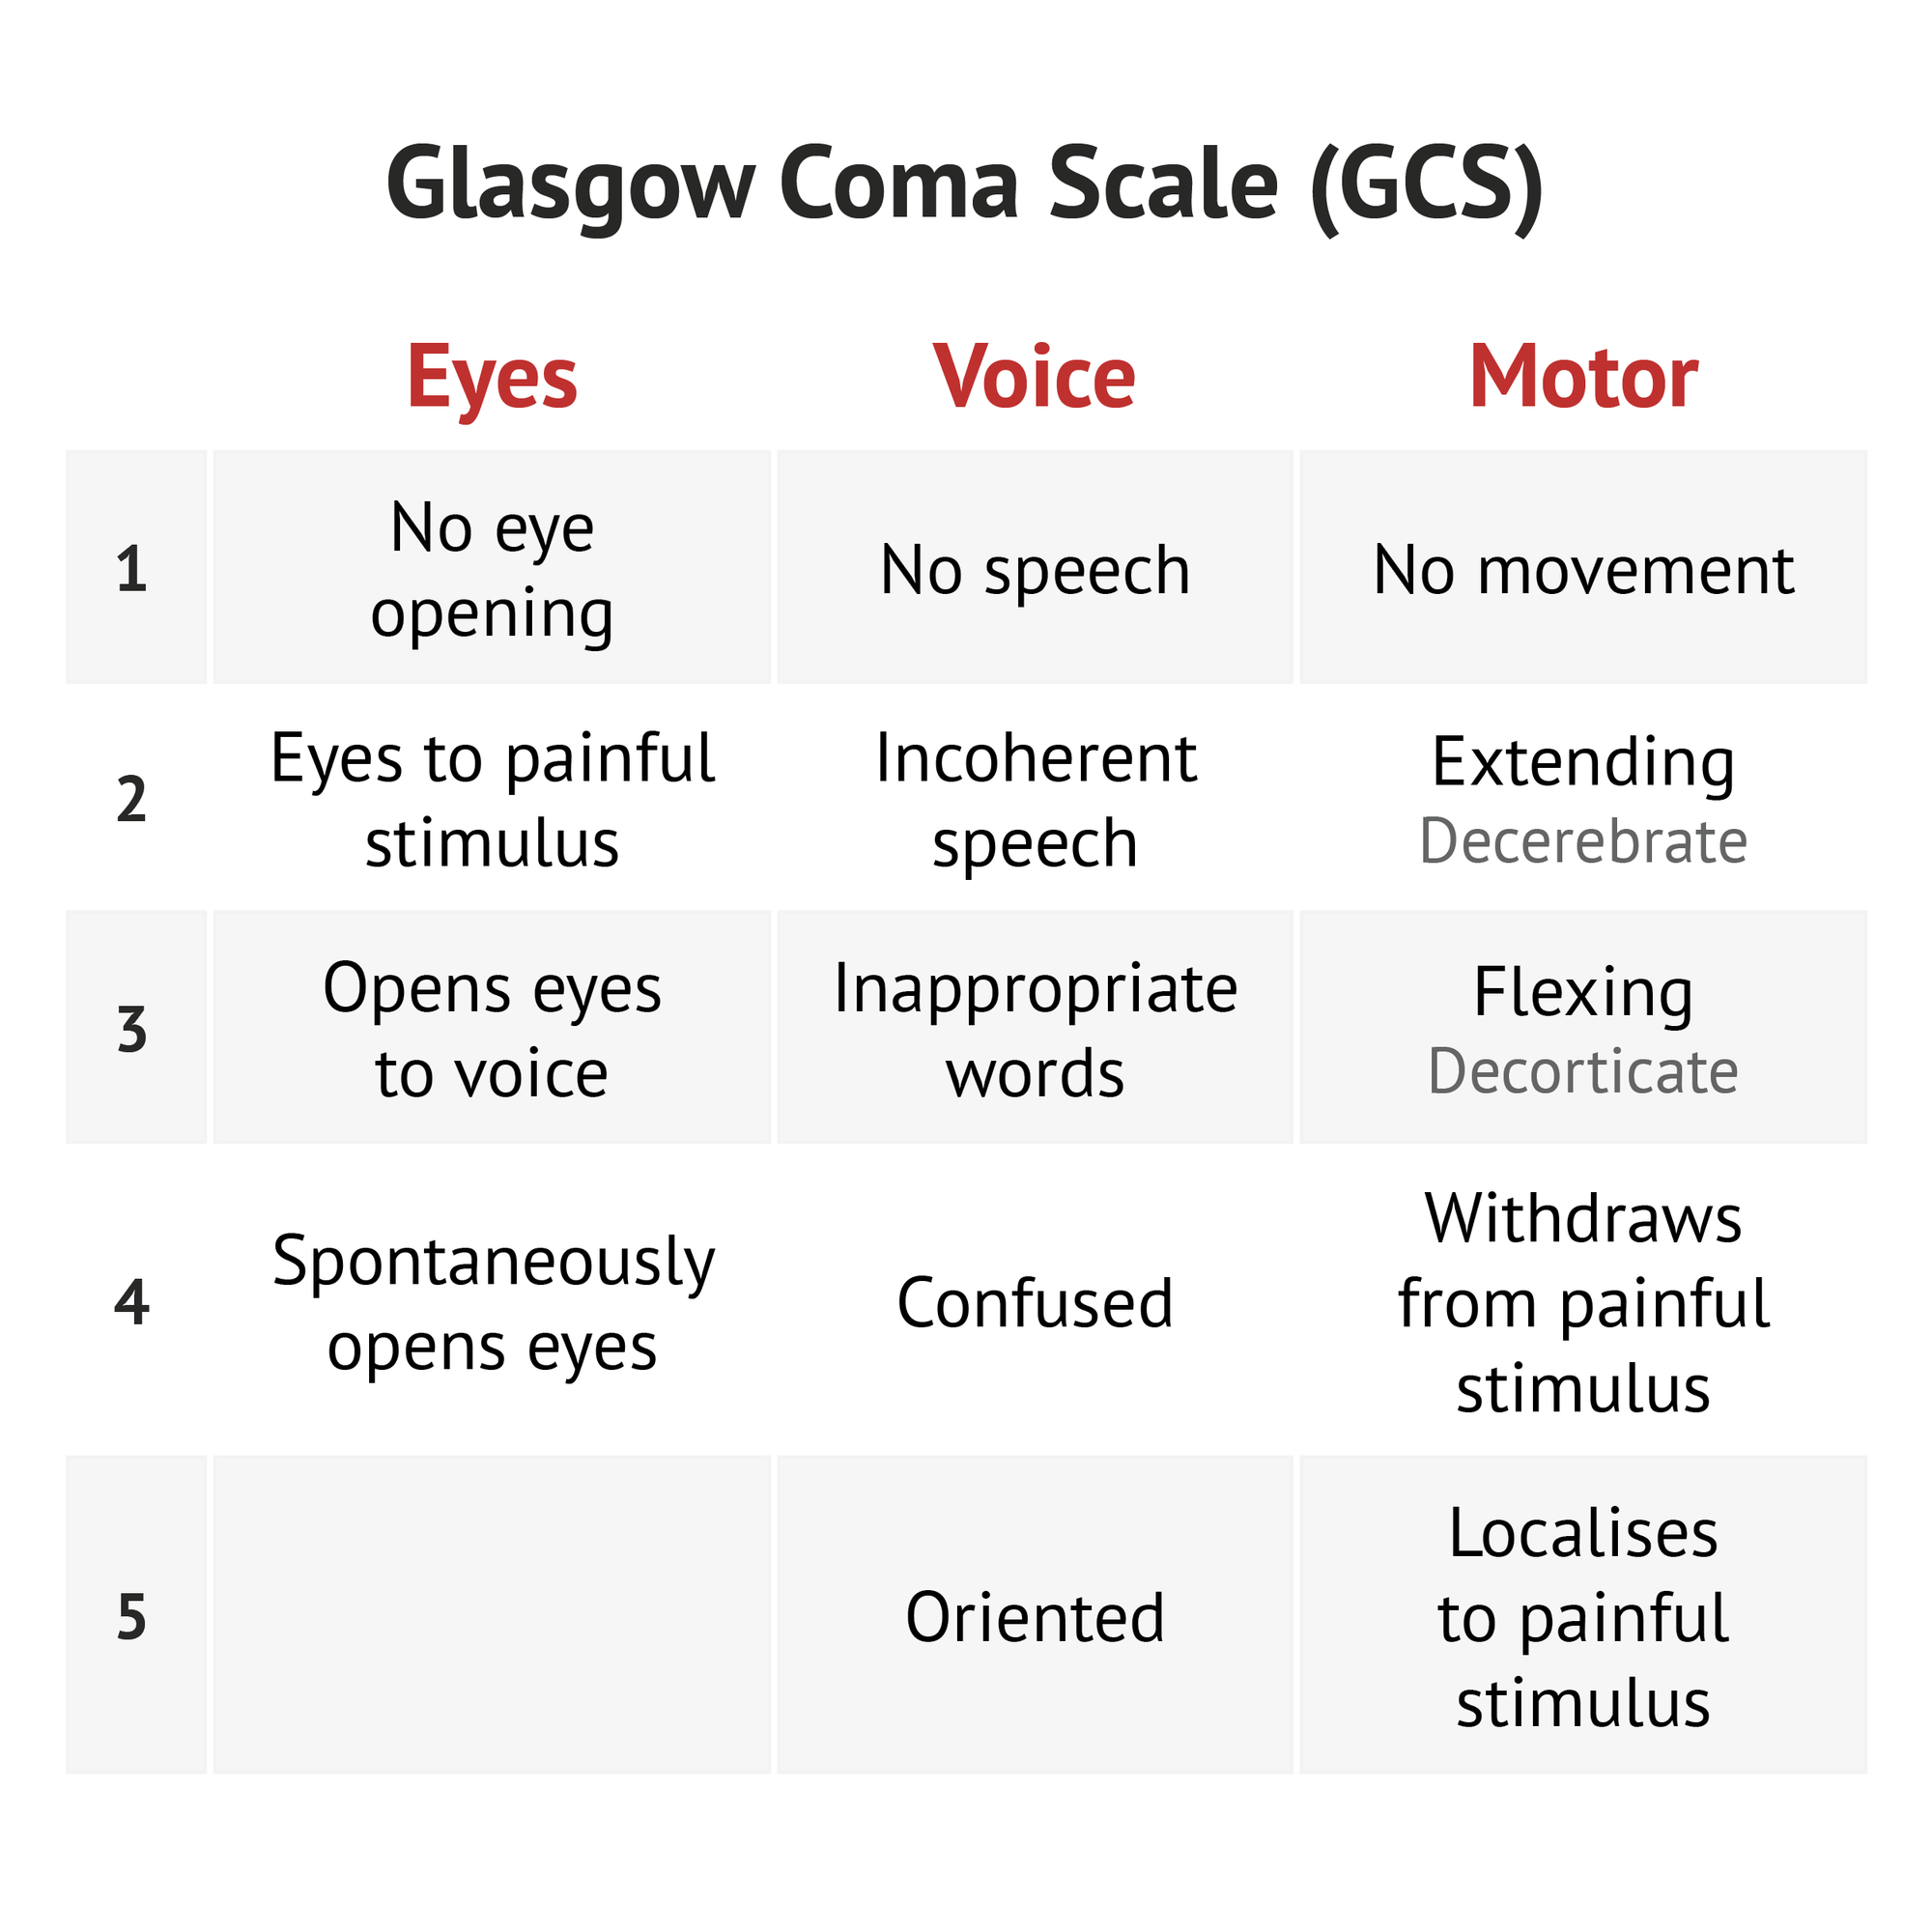 The Glasgow Coma Scale Gcs Is A 15 Point Scale That Uses